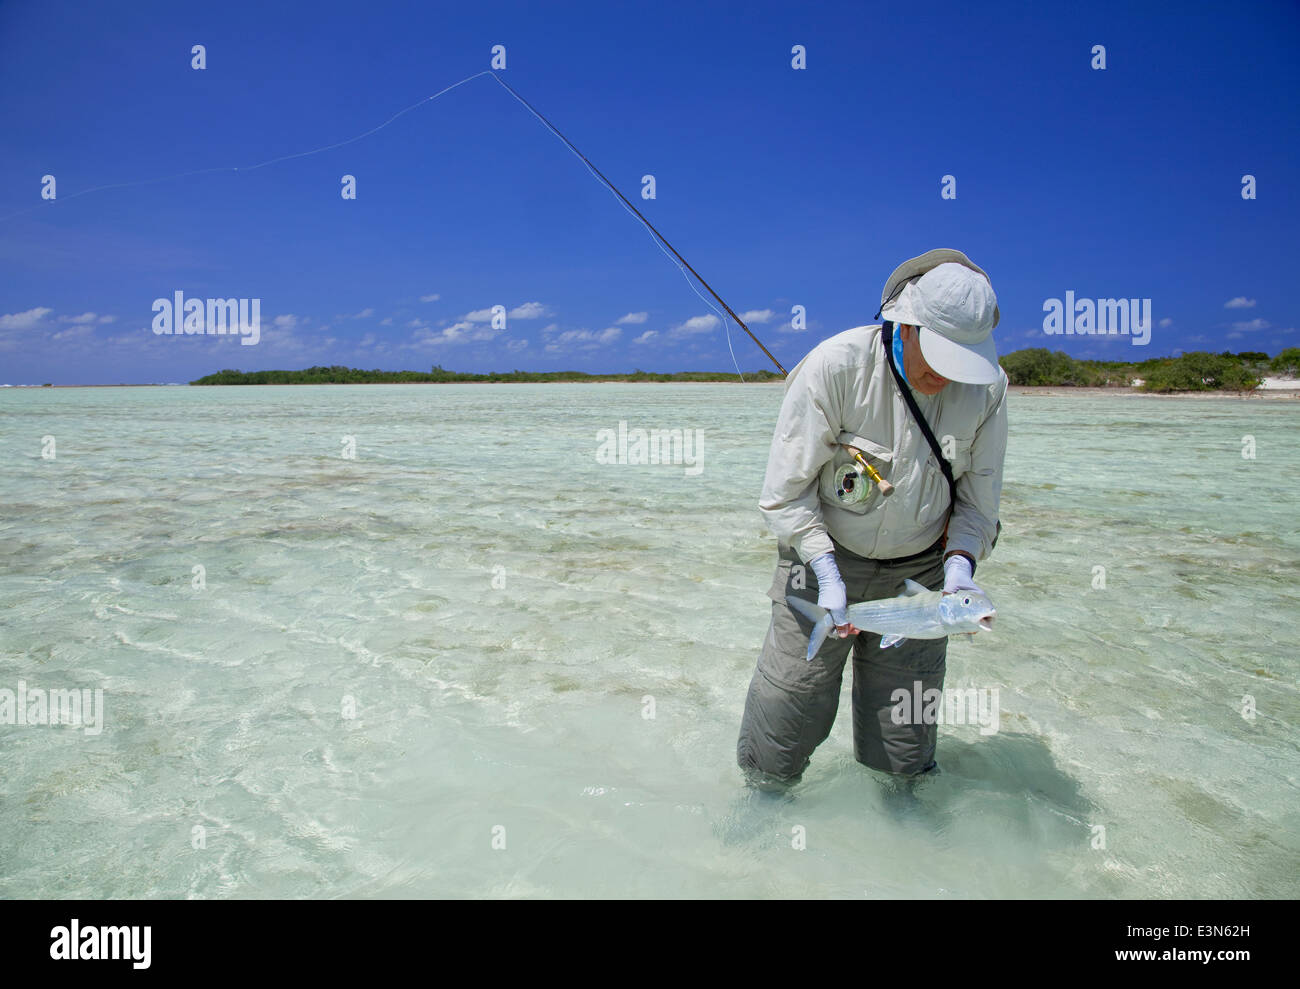 Saltwater fly fishing per bonefish nelle isole delle Bahamas Immagini Stock